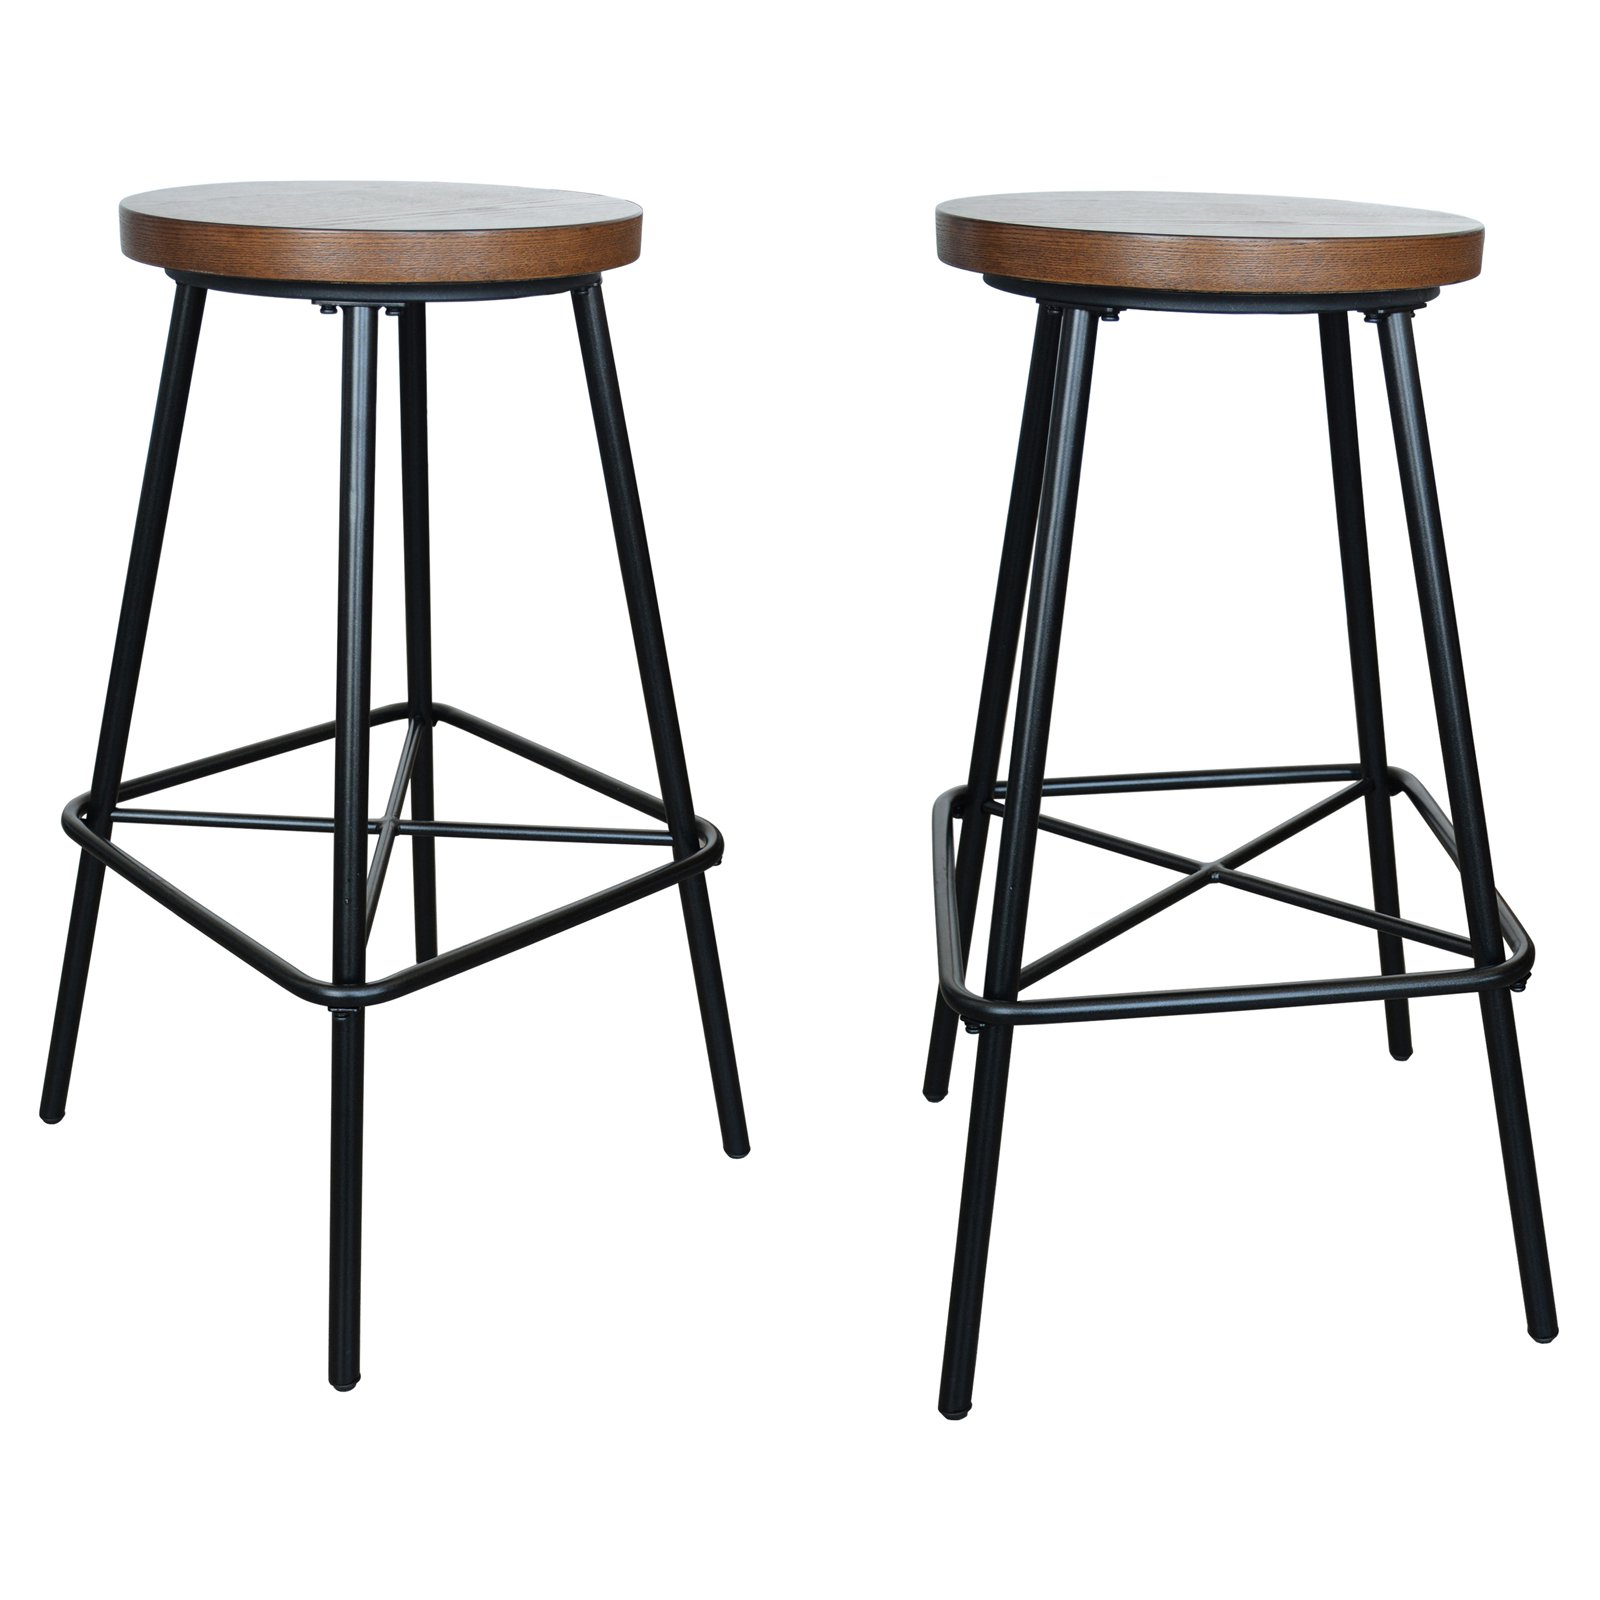 Carolina Chair Table Co Thatcher 30 In Backless Bar Height Stool Set Of 2 Bar Stools Iron Bar Stools Bar Height Stools